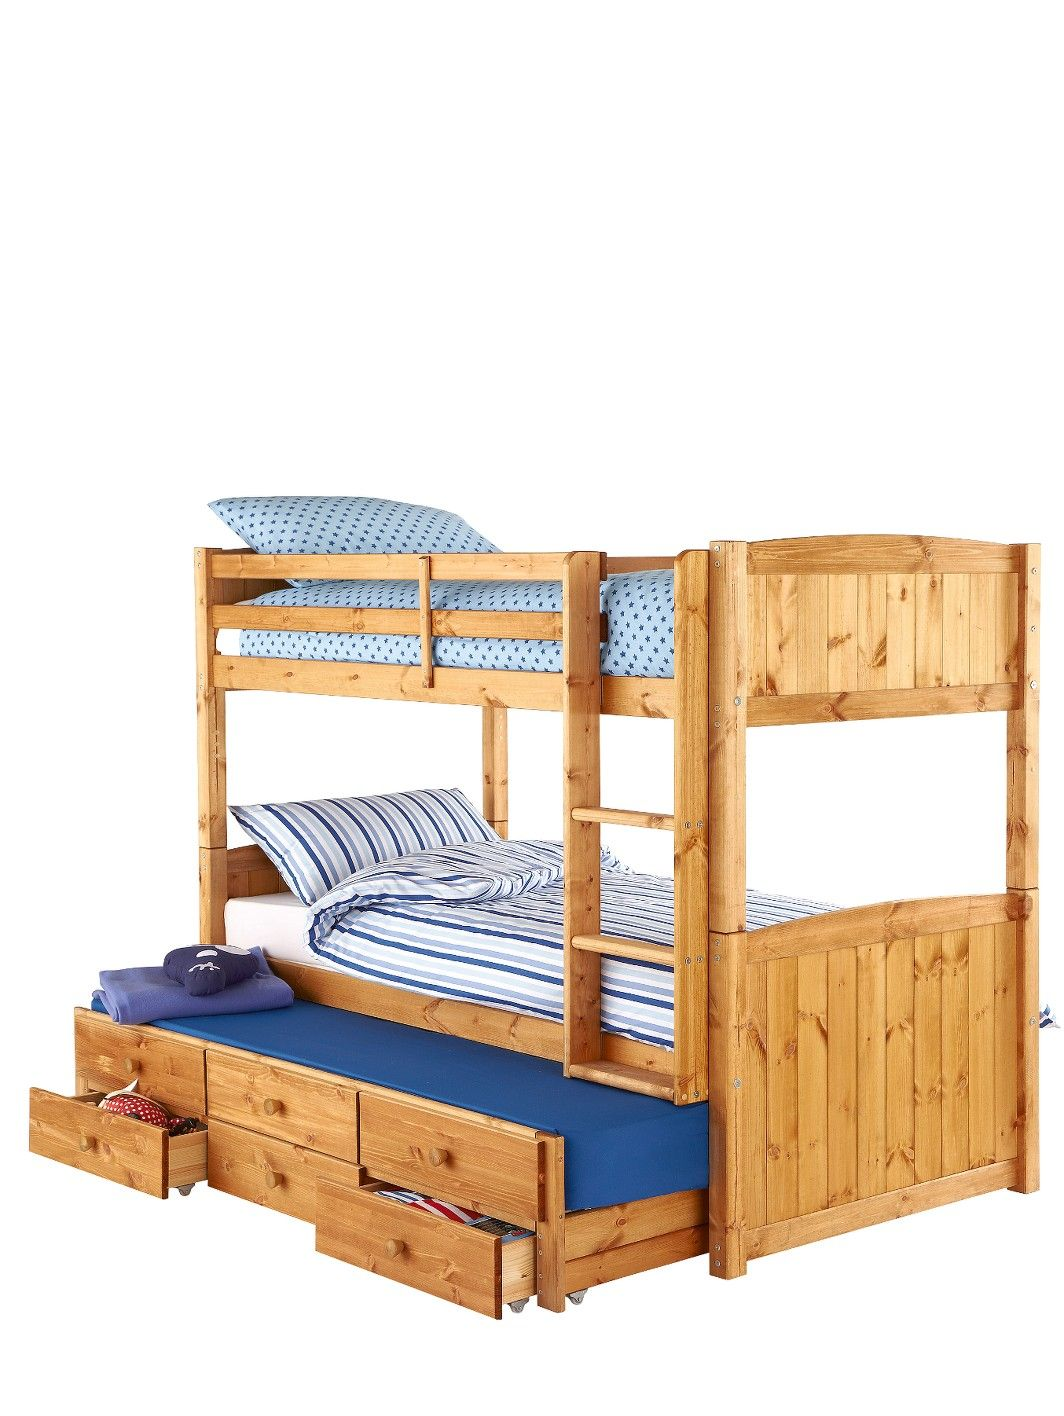 Best Kidspace Georgie Solid Pine Bunk Bed Frame With Storage 400 x 300